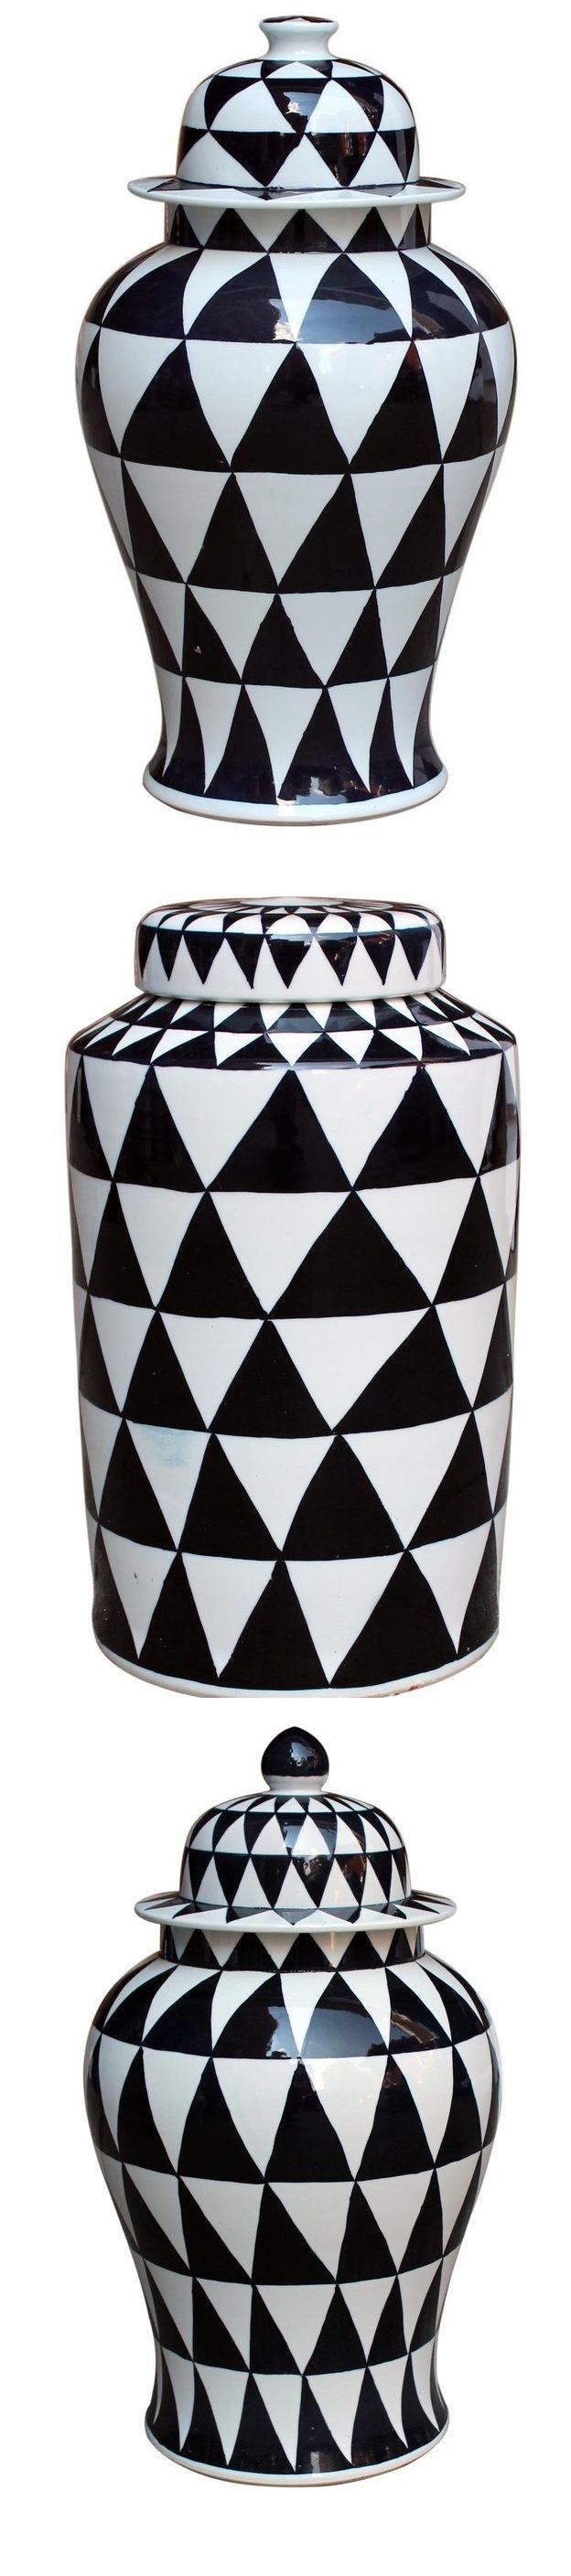 Black And White Vase Black And White Vases Black And White